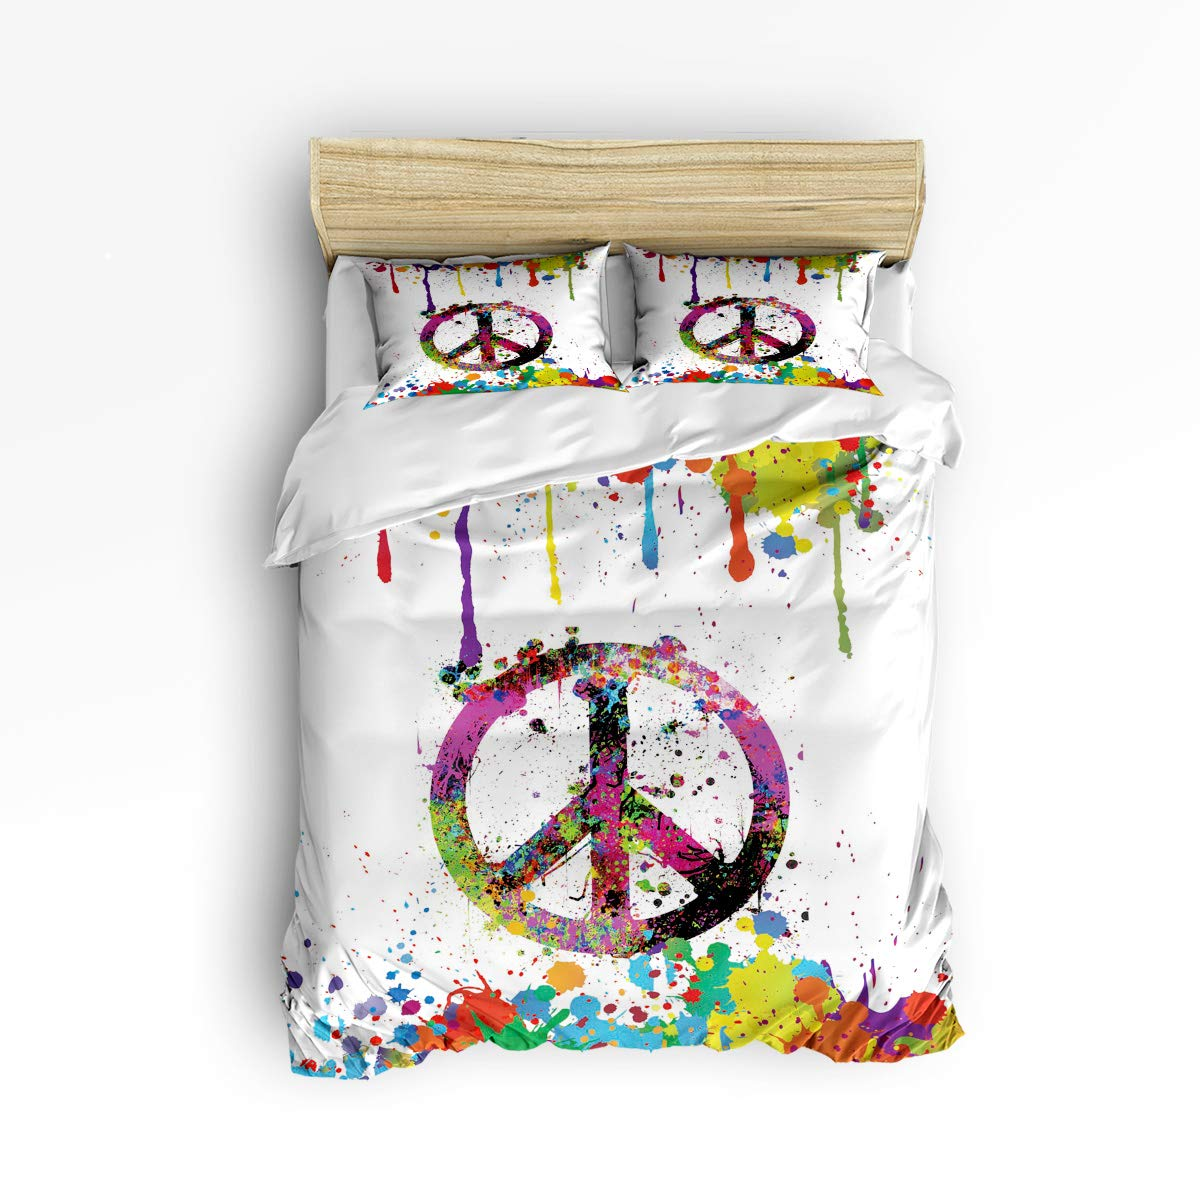 YEHO Art Gallery Soft Duvet Cover Set Bed Sets for Children Kids Girls Boys,Graffiti Anti-war Sign Colorful Hand Painting Bedding Sets Home Decor,1 Comforter Cover with 2 Pillow Cases,King Size